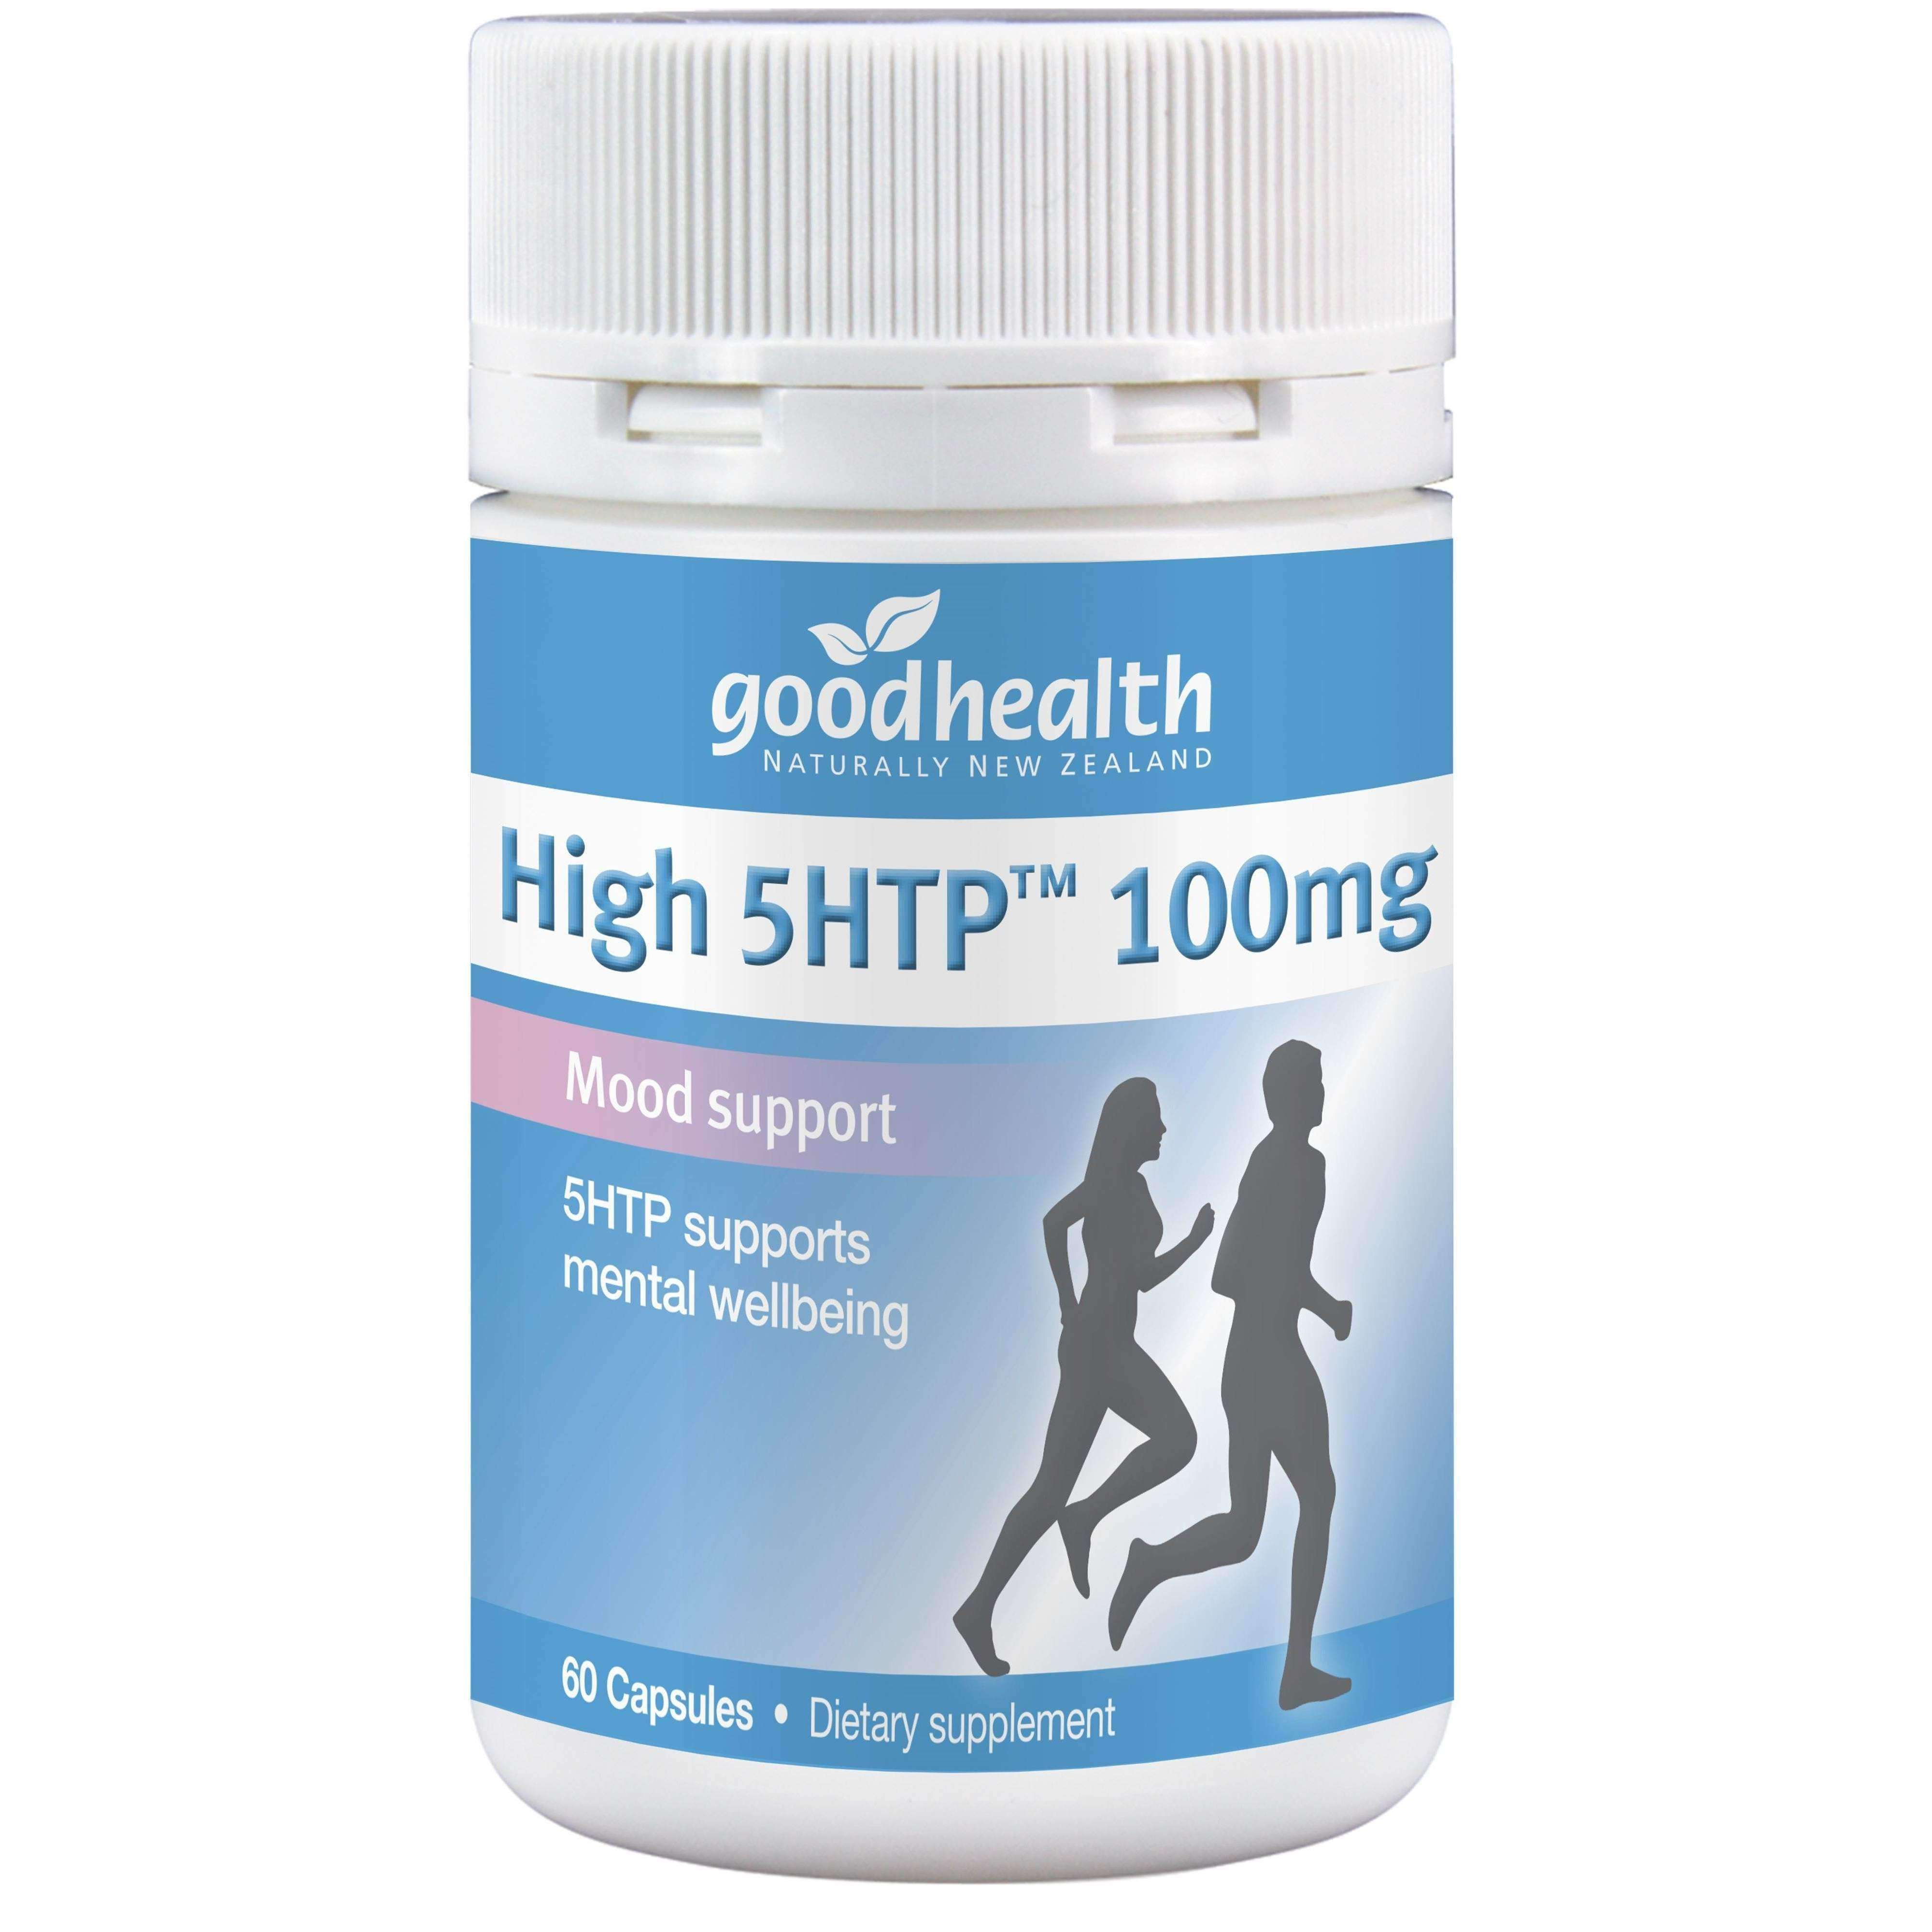 Good Health High 5HTP 100mg